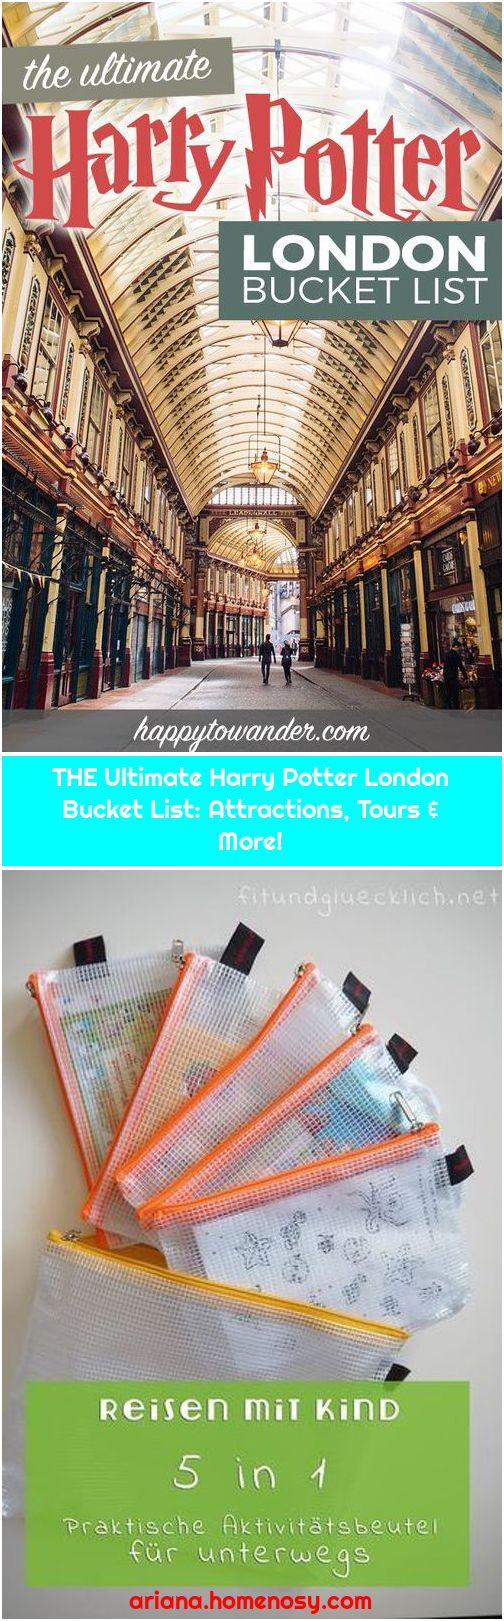 THE Ultimate Harry Potter London Bucket List: Attractions, Tours & More!